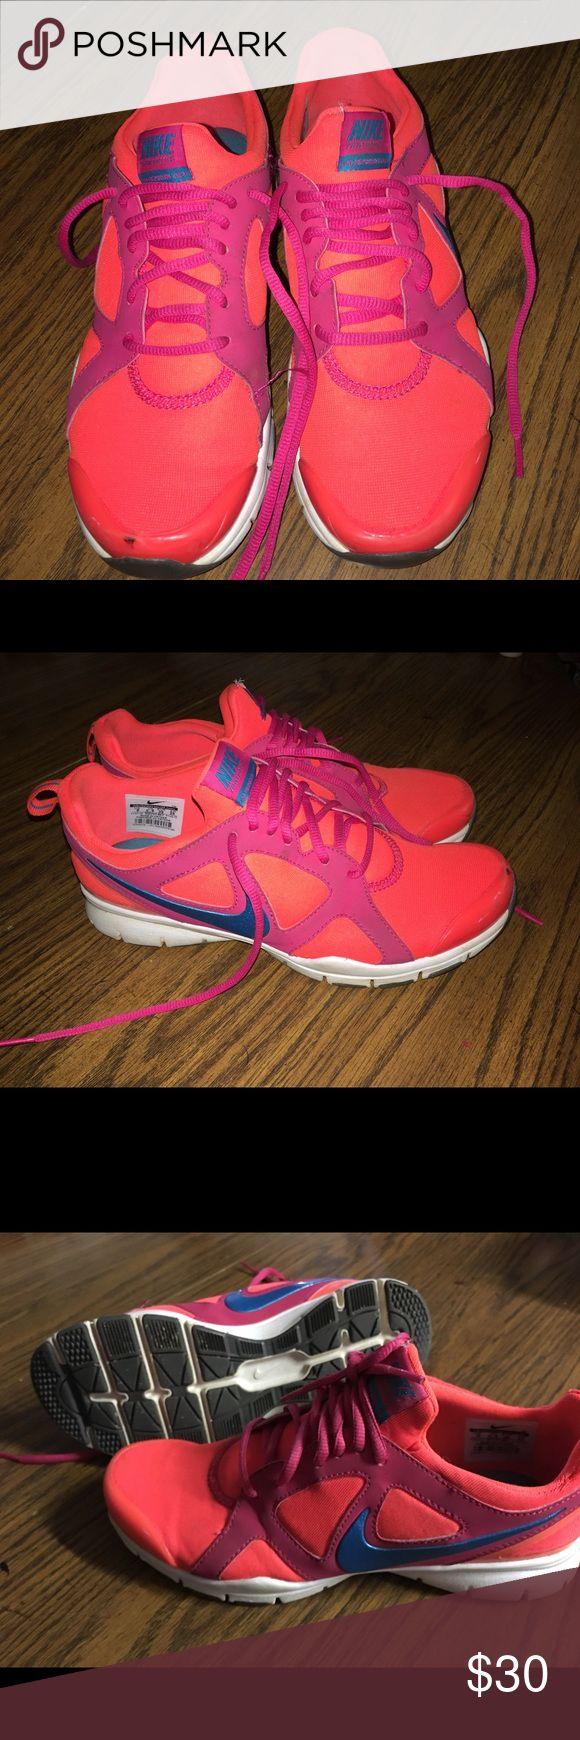 Women's Nike shoes size 8 Orange/ pink with a blue swish! Running shoes, in good condition. No rips! One mark from running on the front! Basic wear from running! Nike Shoes Athletic Shoes